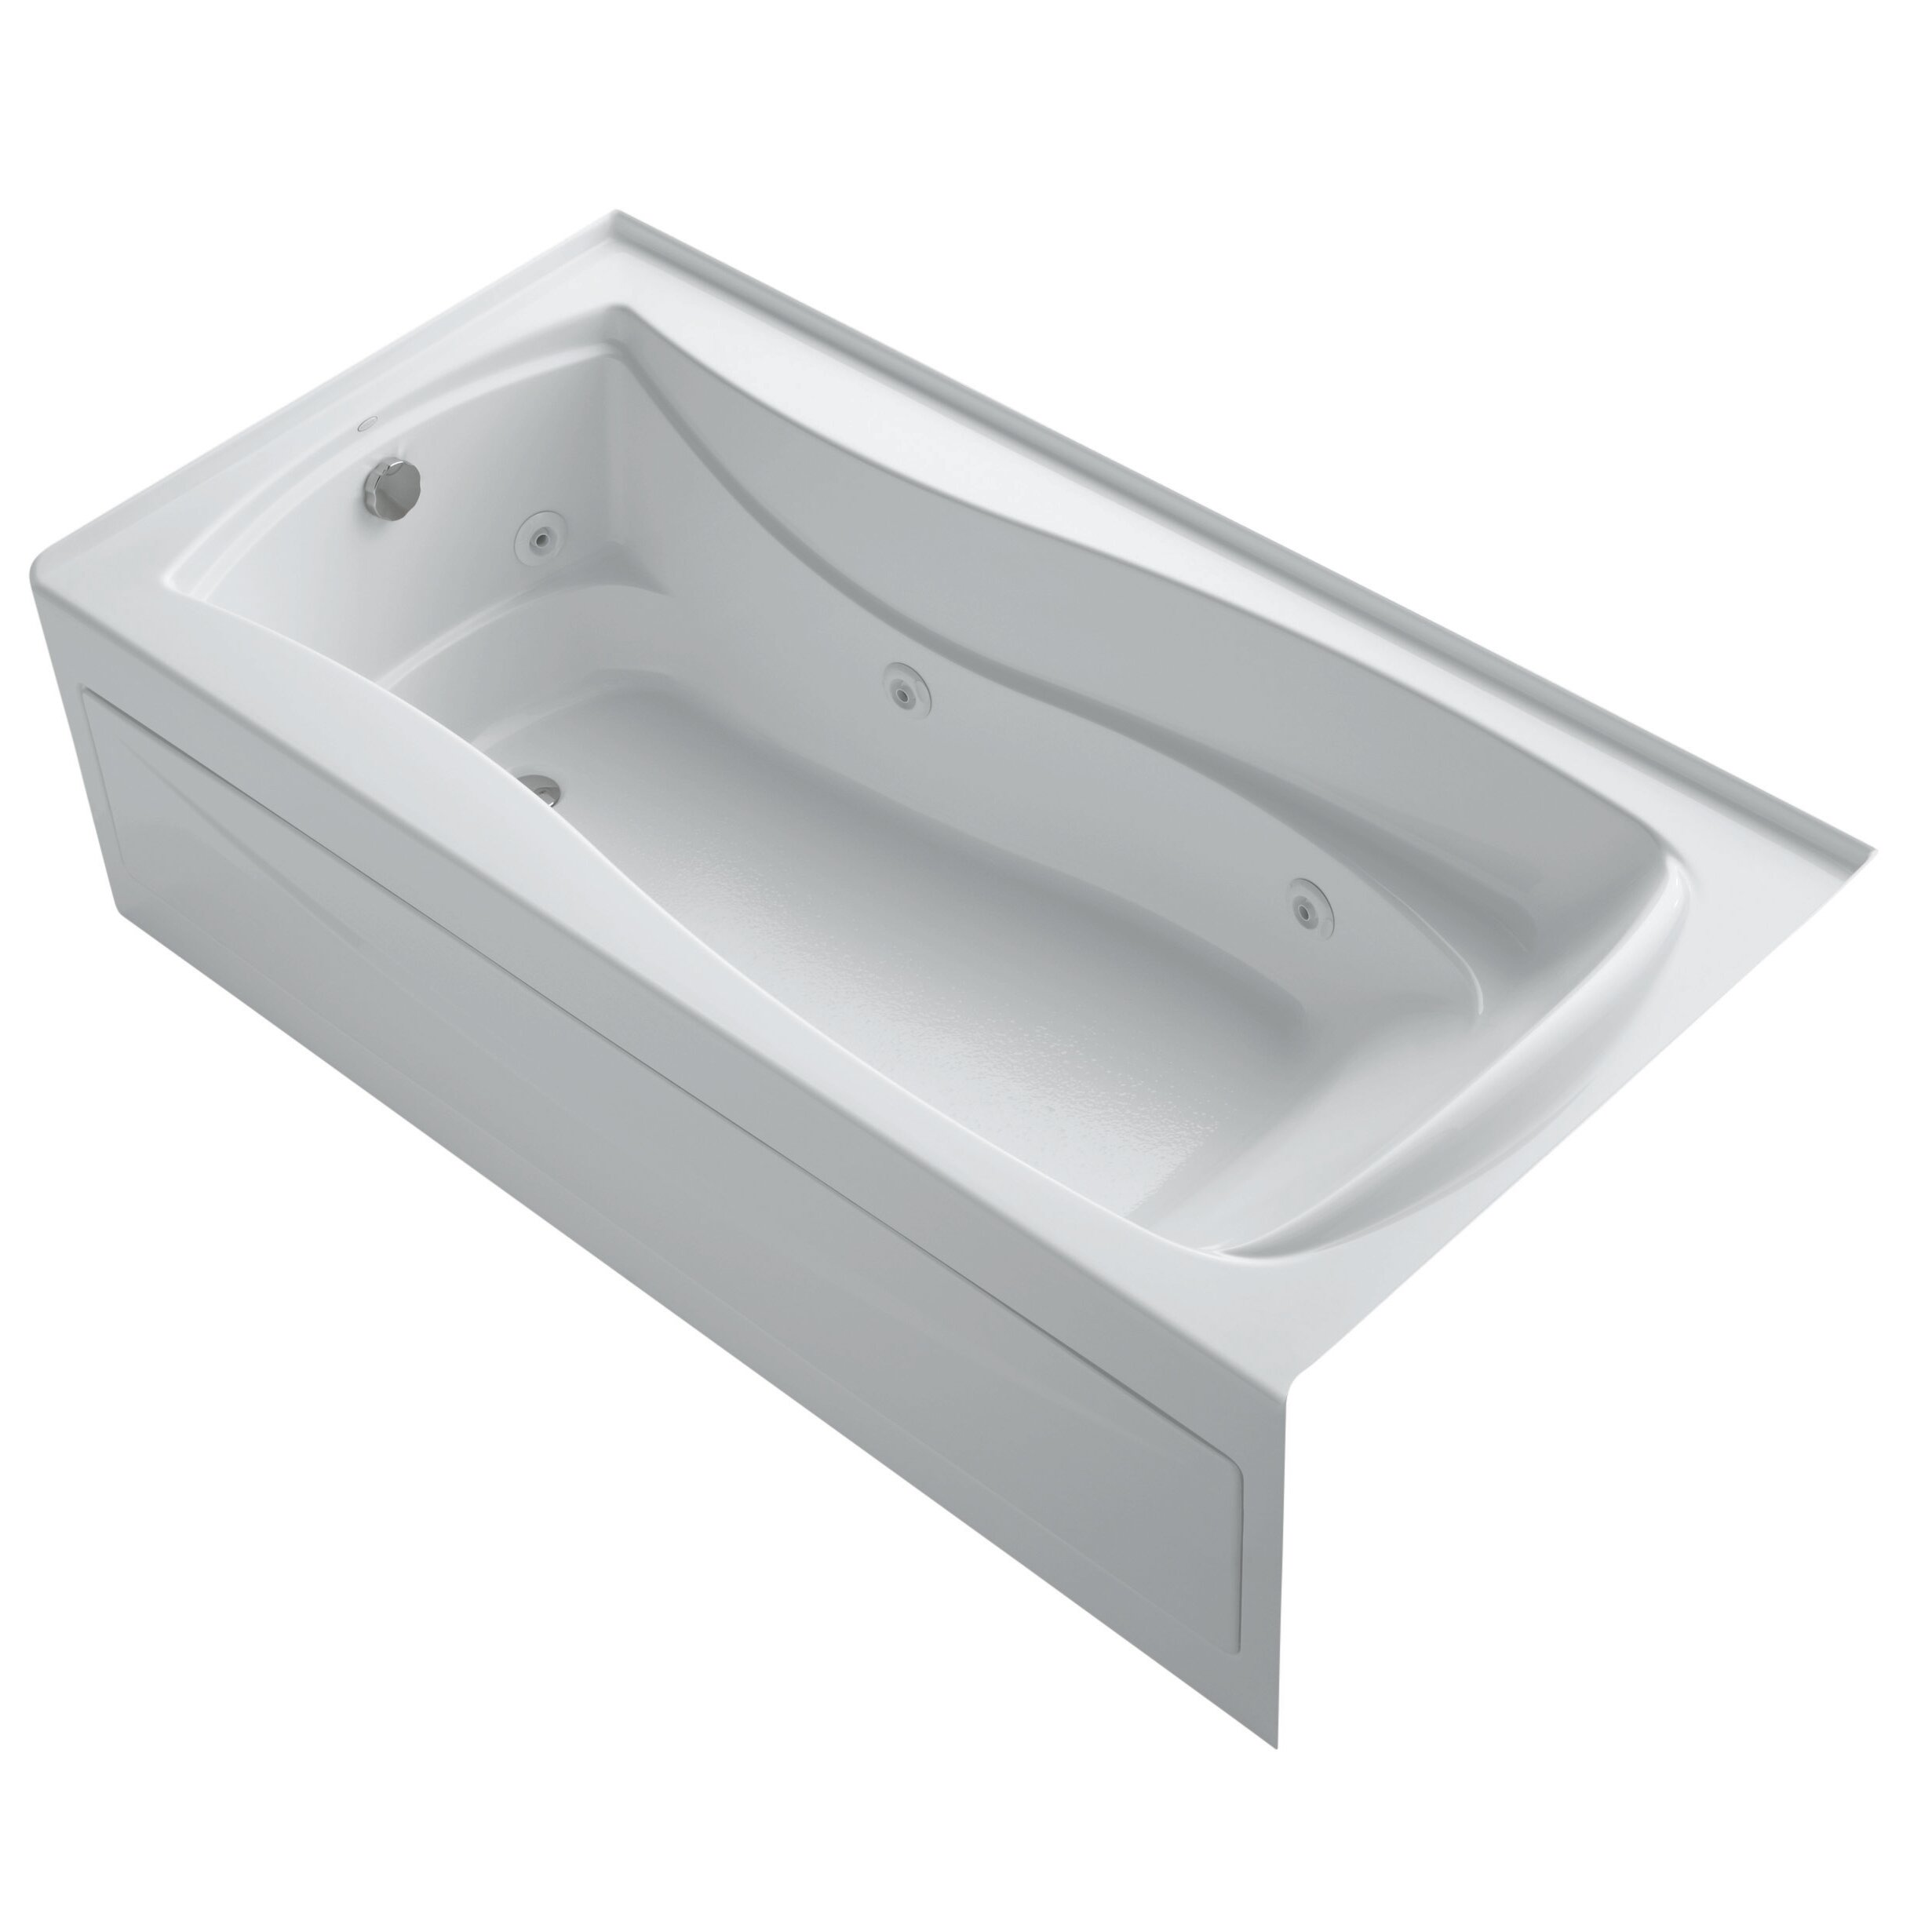 oval tub tubs jet round two whirlpool small for corner bathtub jetted free standing rectangular